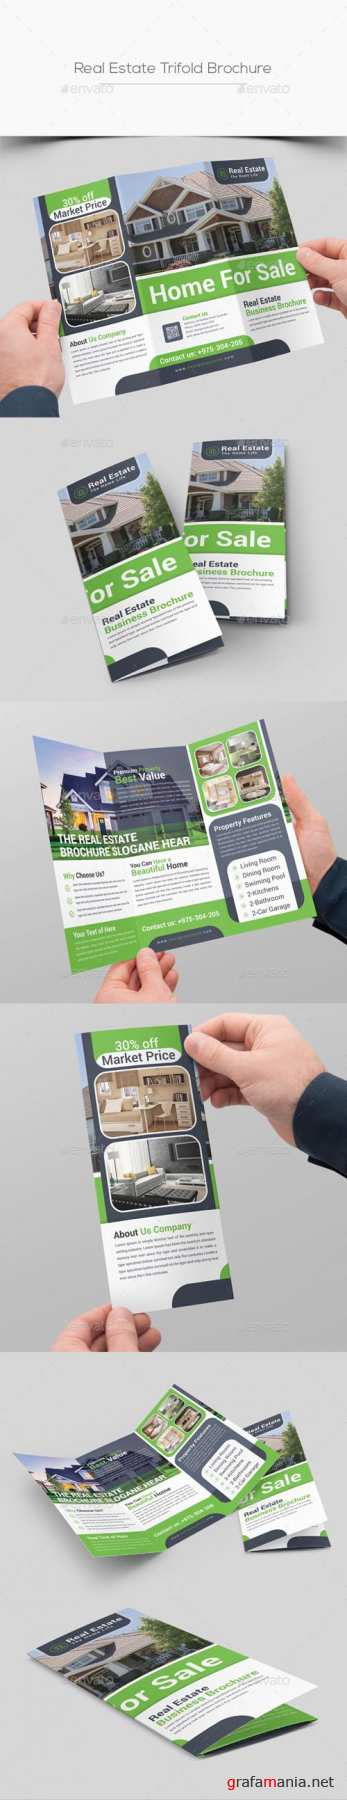 Real Estate Trifold Brochure 20175499